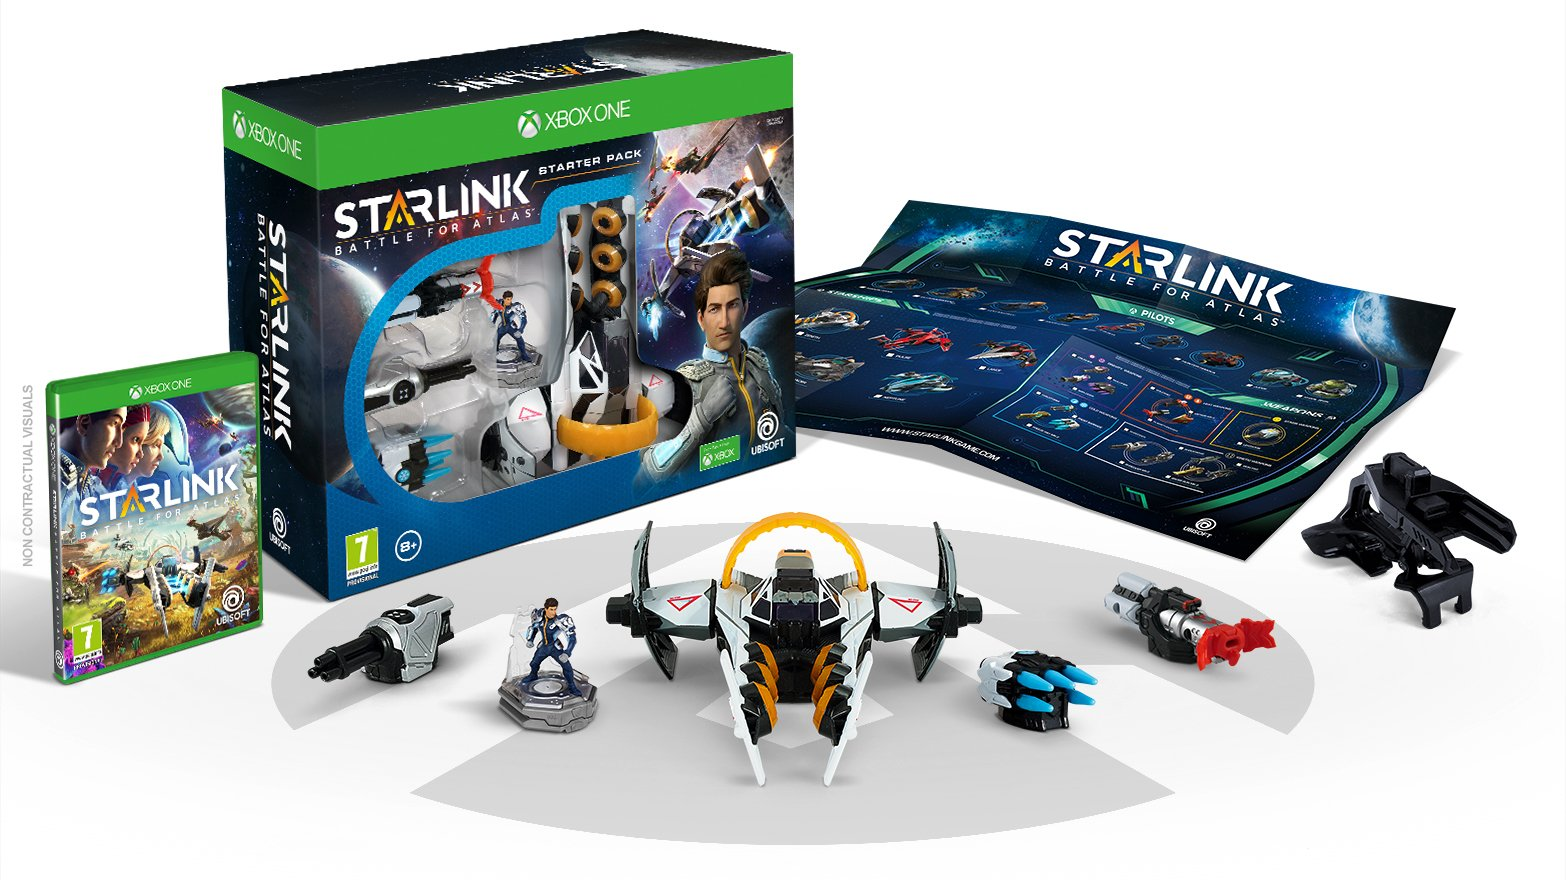 The Xbox One Starter Pack for Starlink: Battle for Atlas.